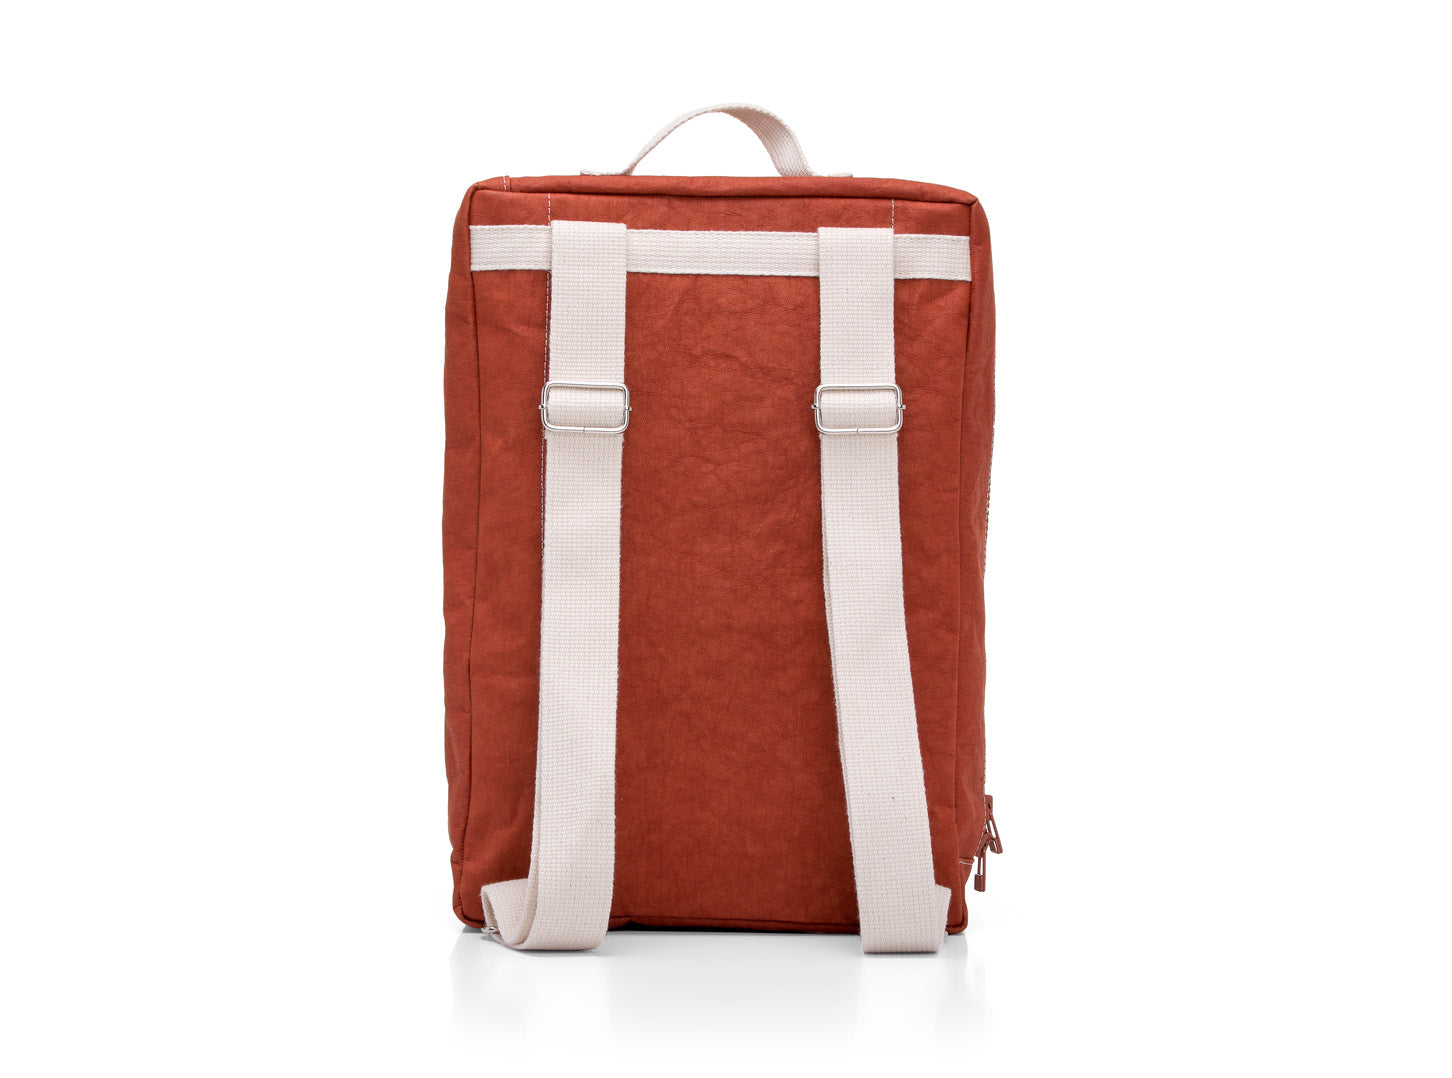 Picture of Epidotte CASE BACKPACK BRICK RED SIRT ÇANTASI